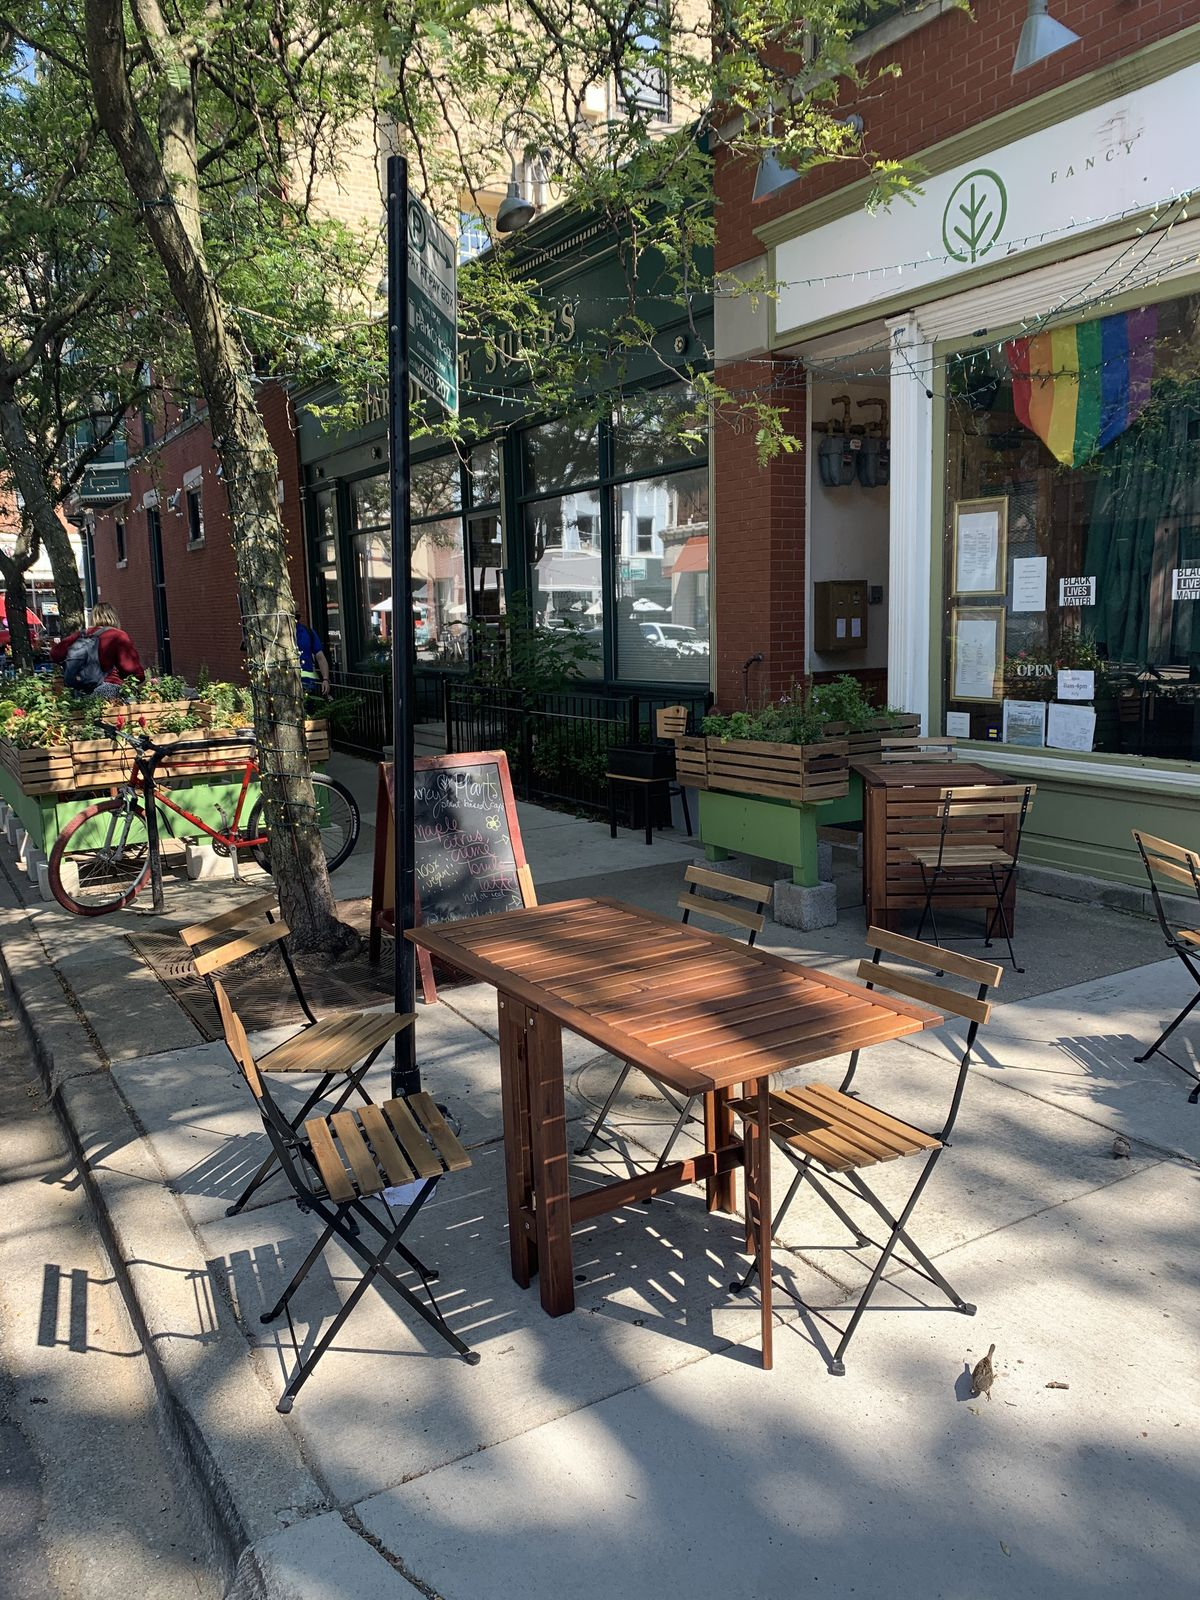 A sidewalk cafe on a tree-lined street during the day.